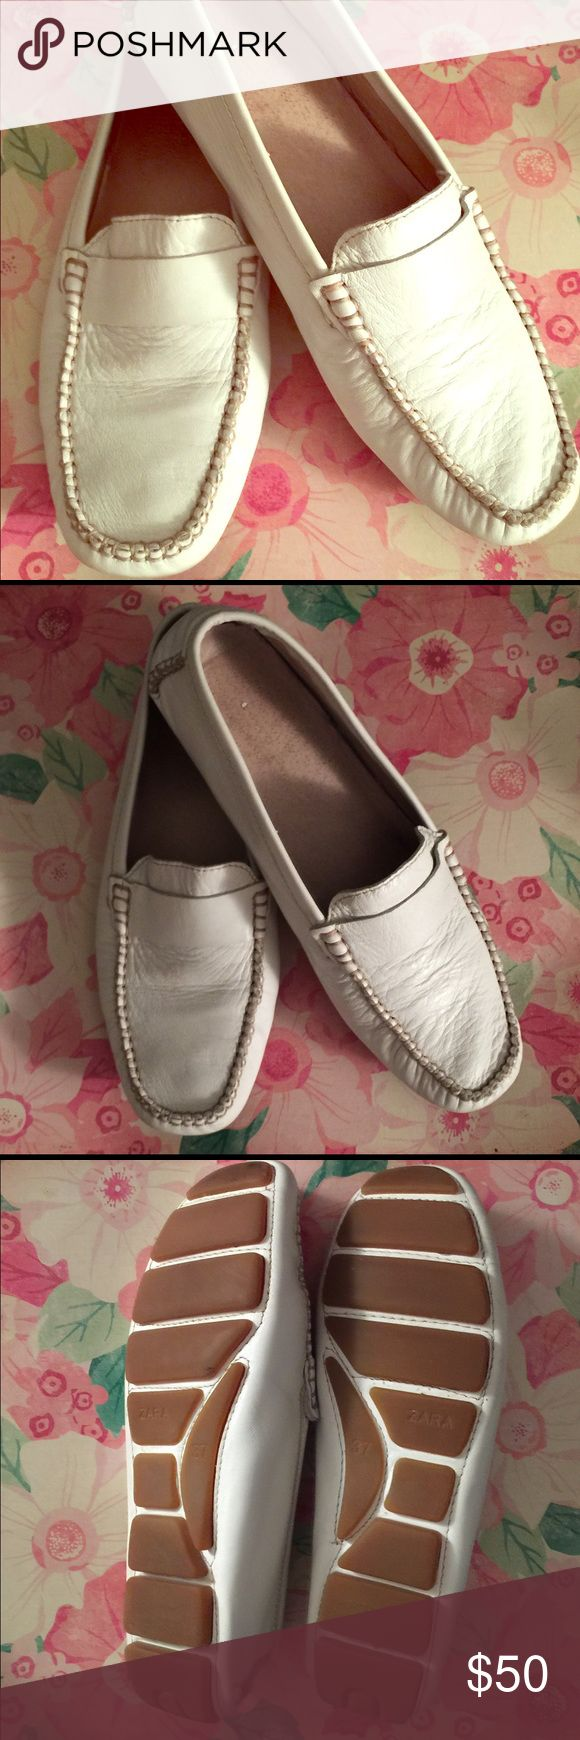 ZARA: Women's Driving Mocs ZARA:  Women's white leather driving moccasins/ Loafers Size 37 Zara Shoes Moccasins